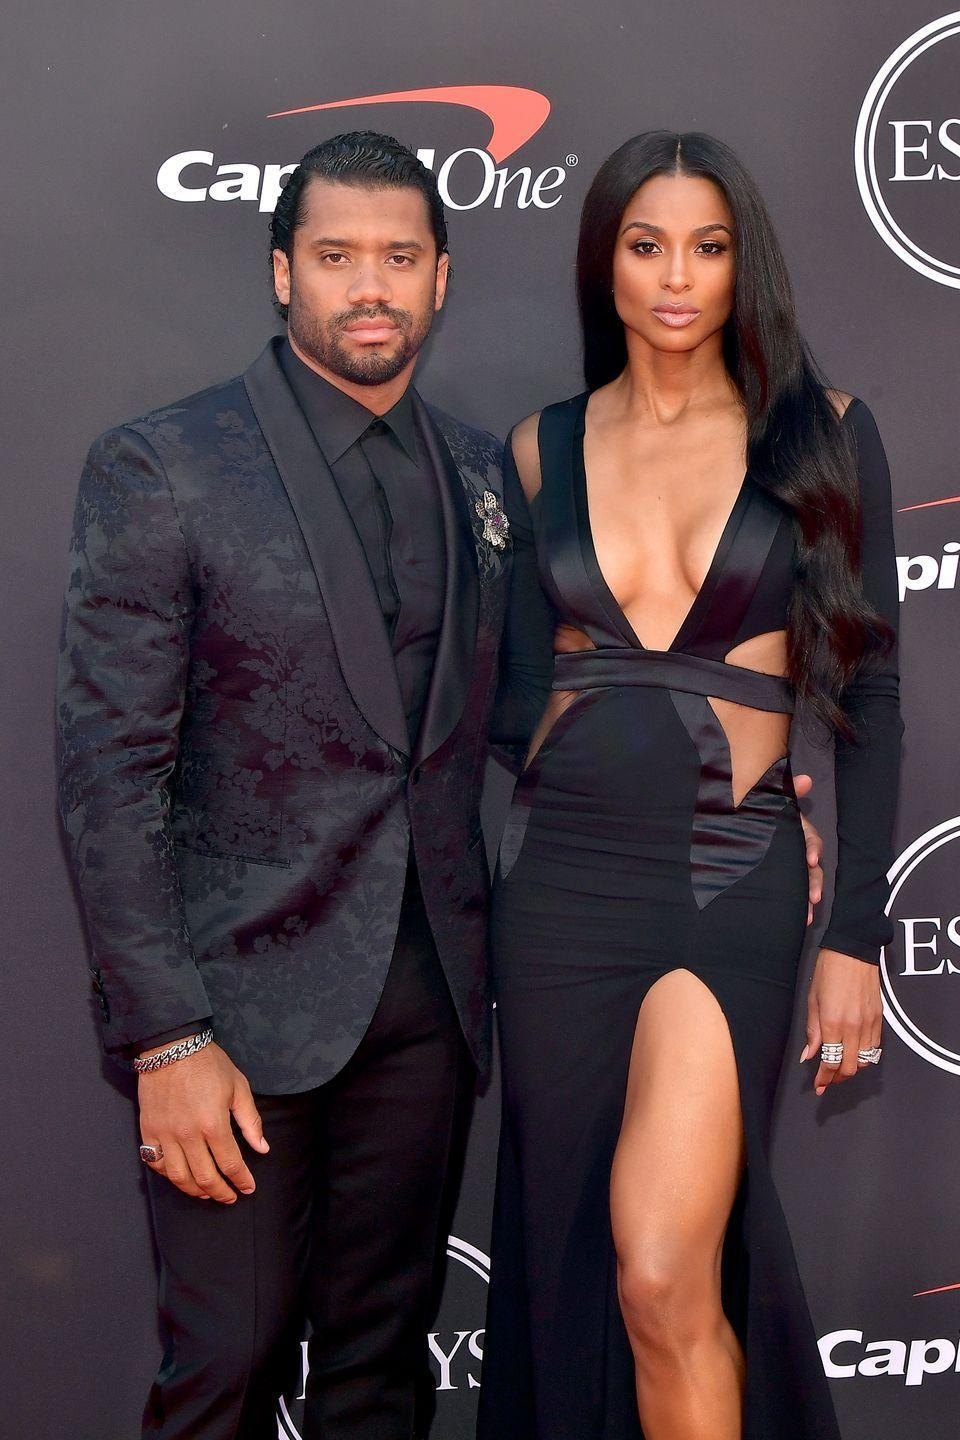 "<p>After both getting out of serious relationships, Ciara and Russell Wilson started dating in April 2015. The singer and the NFL star weren't shy about their relationship, and they even talked about their decision to remain abstinent until marriage. </p><p>""I really believe that when you focus on a friendship, you have the opportunity to build a strong foundation for a relationship,"" Ciara told <em><a href=""https://www.eonline.com/ca/news/822483/ciara-addresses-her-and-russell-wilson-s-decision-to-practice-abstinence-it-s-important-to-have-standards"" rel=""nofollow noopener"" target=""_blank"" data-ylk=""slk:Cosmopolitan South Africa"" class=""link rapid-noclick-resp"">Cosmopolitan South Africa</a></em>. ""You shouldn't feel like you have to give your body away to get someone to like you.""<br><br>The two got married and broke their abstinence in July 2016, then announced their pregnancy just a few months later.</p>"